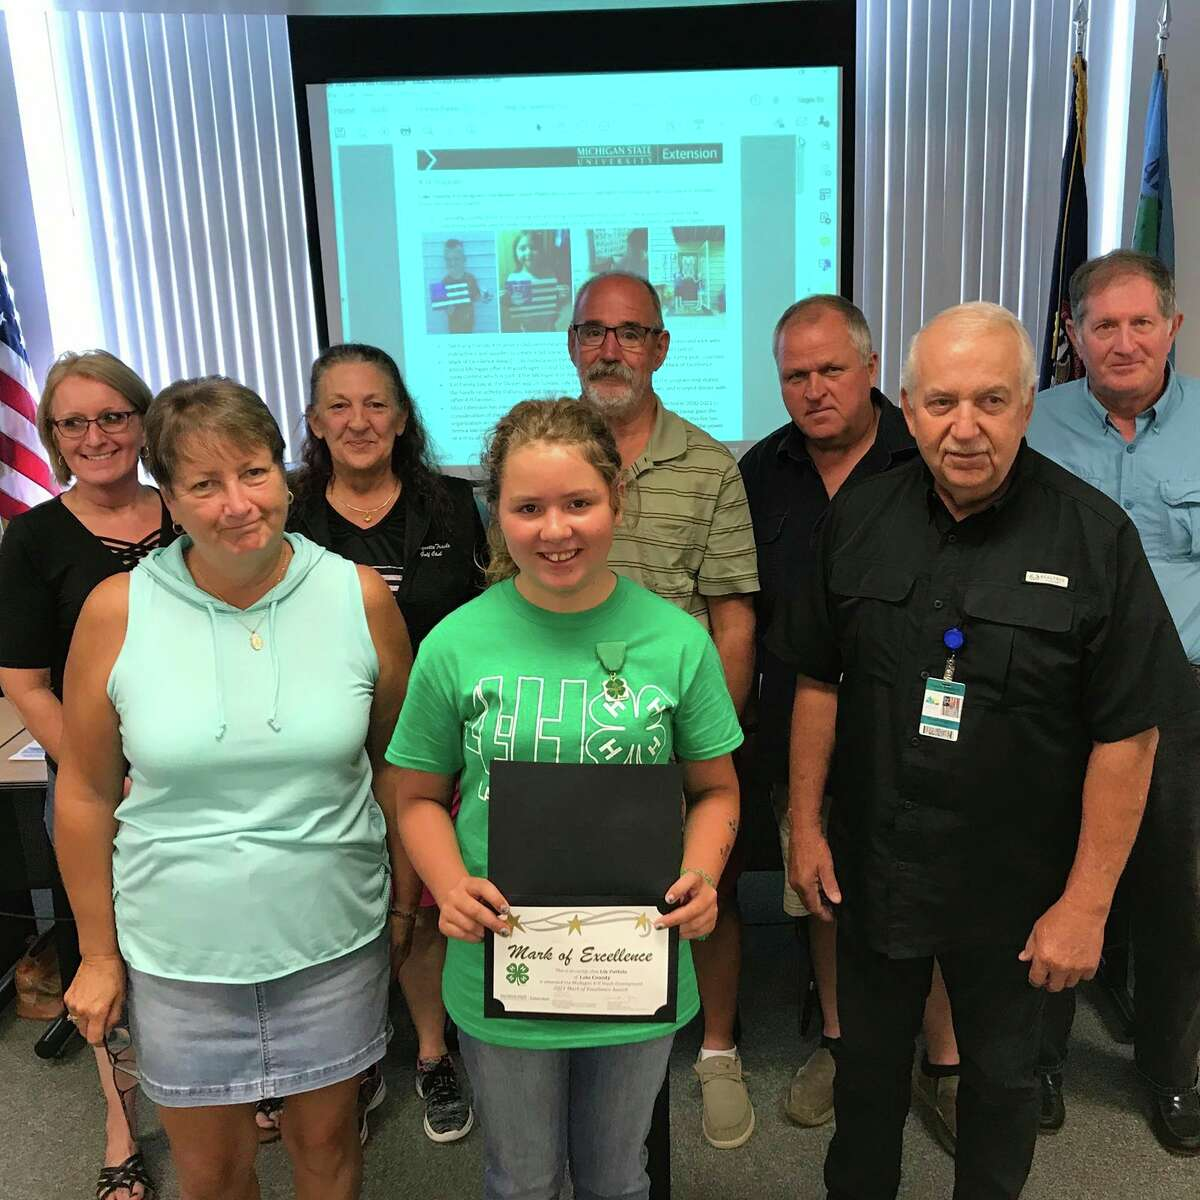 Lily Putkela, 12, winner of the 4-H Mark of Excellence Award for Lake County, meets with the Lake County Board of Commissioners to present her essay on what 4-H means to her. Lilyisone of 20 youths throughout the state honored with this 4-H award. (Courtesy/Lake County 4-H)